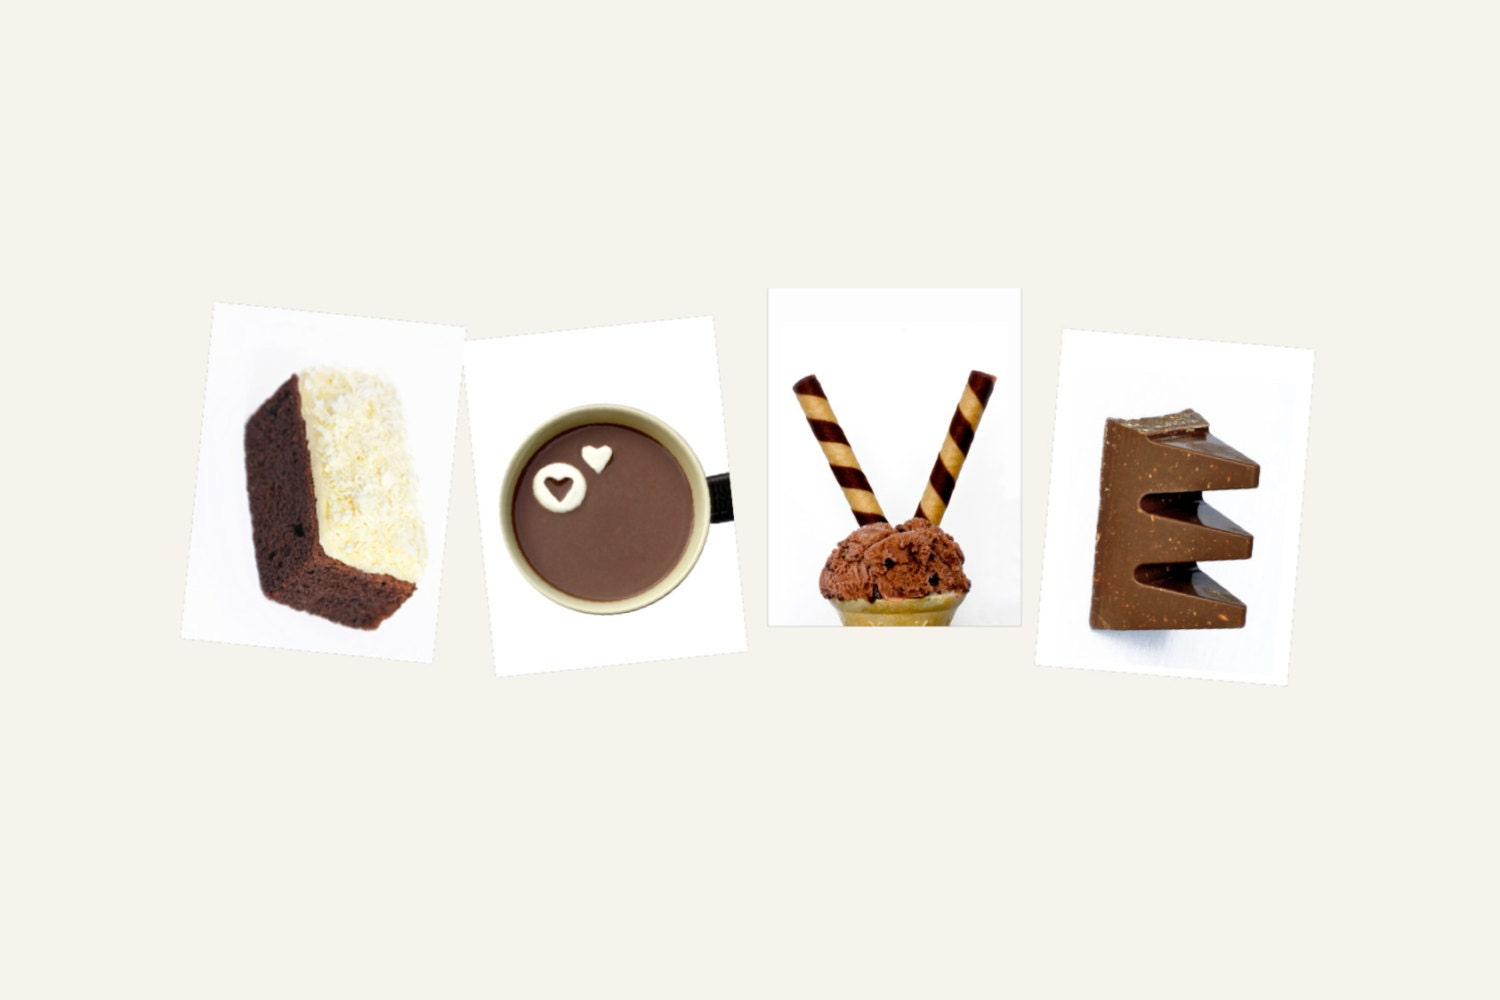 CHOCOLATE LOVE MiSS PiCCY Creative Letter Art Photos Only